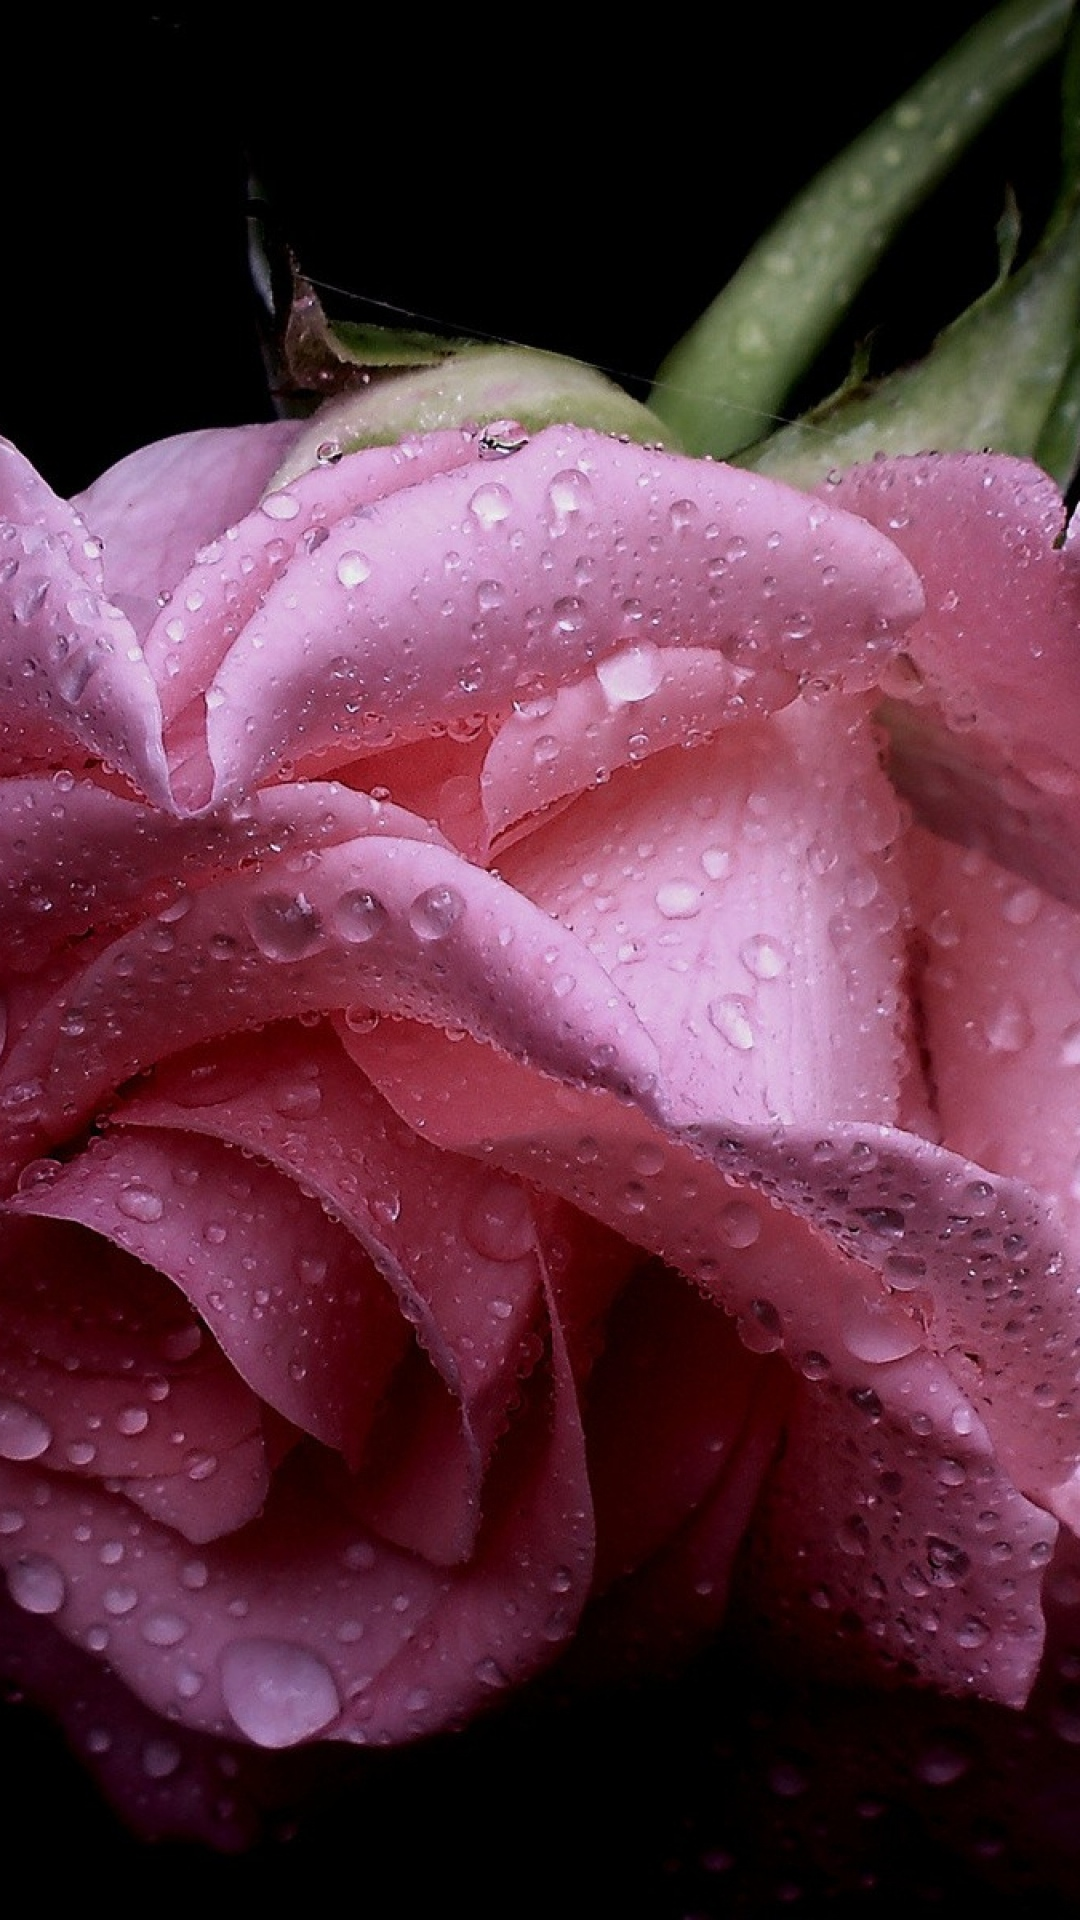 1080x1920-rose-flower-drops-petals-wallpaper-wp340623